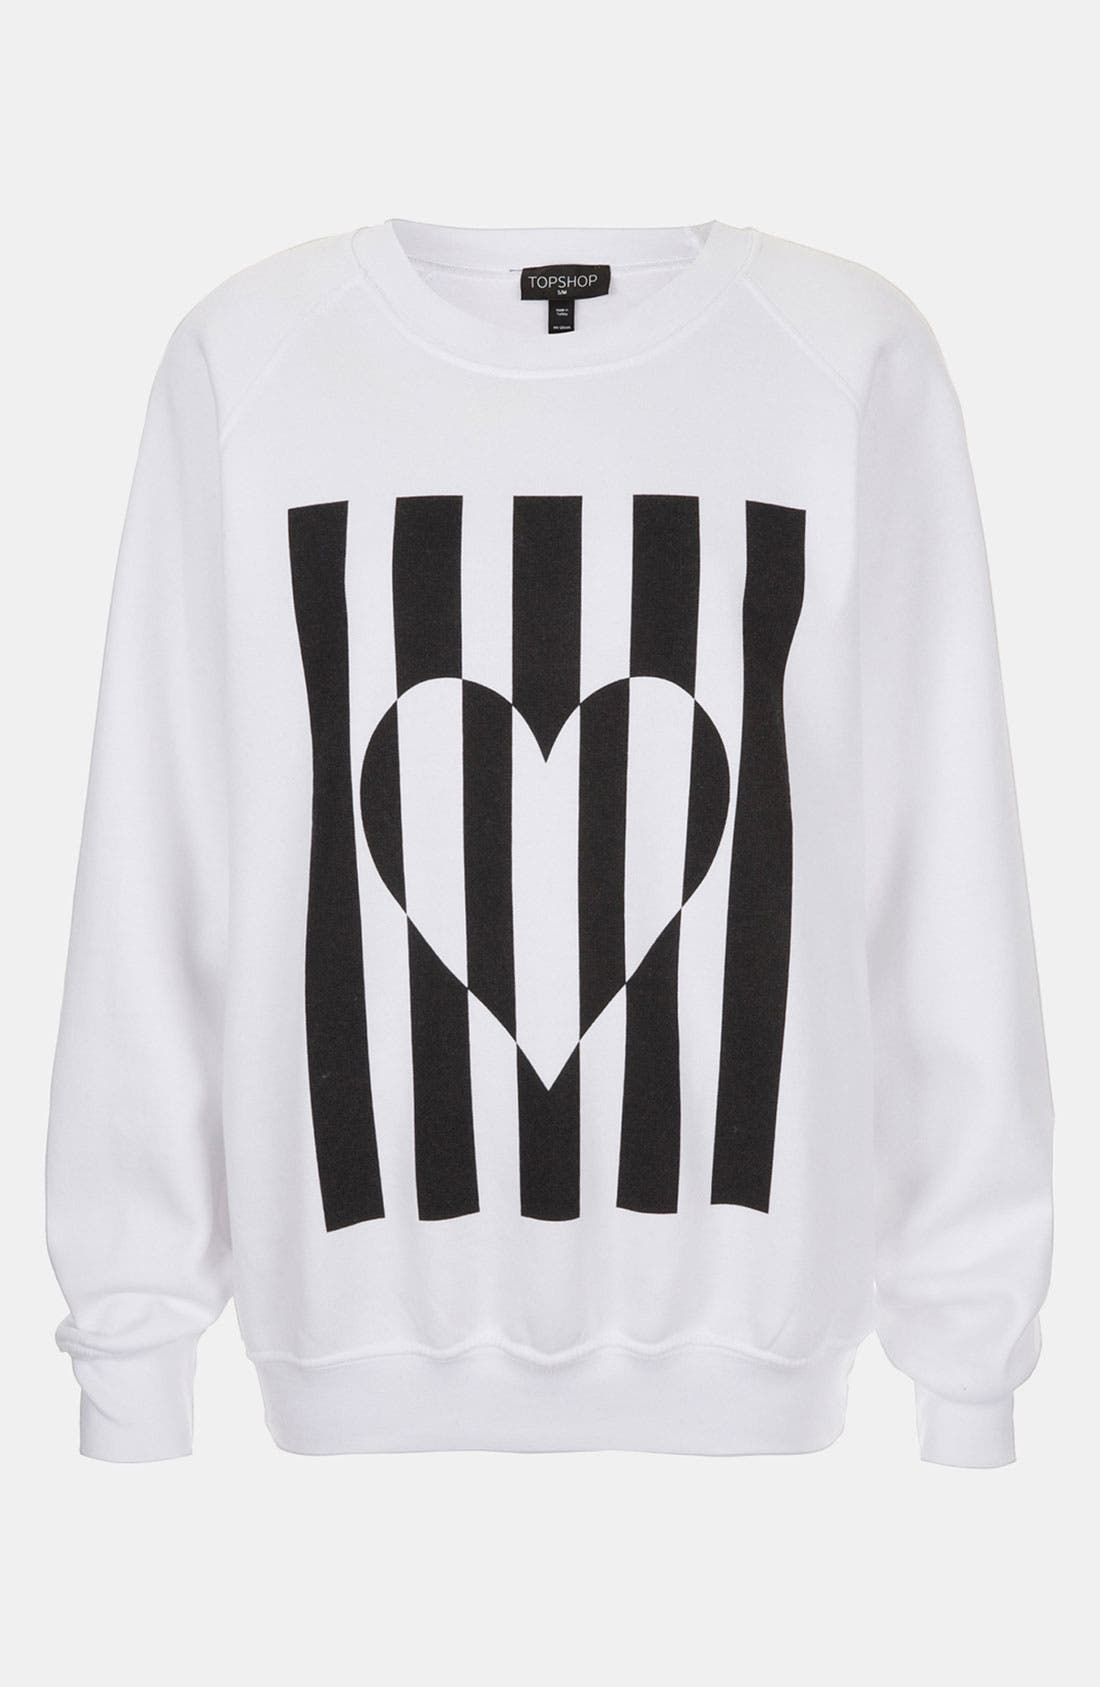 Alternate Image 1 Selected - Topshop Heart Graphic Sweatshirt